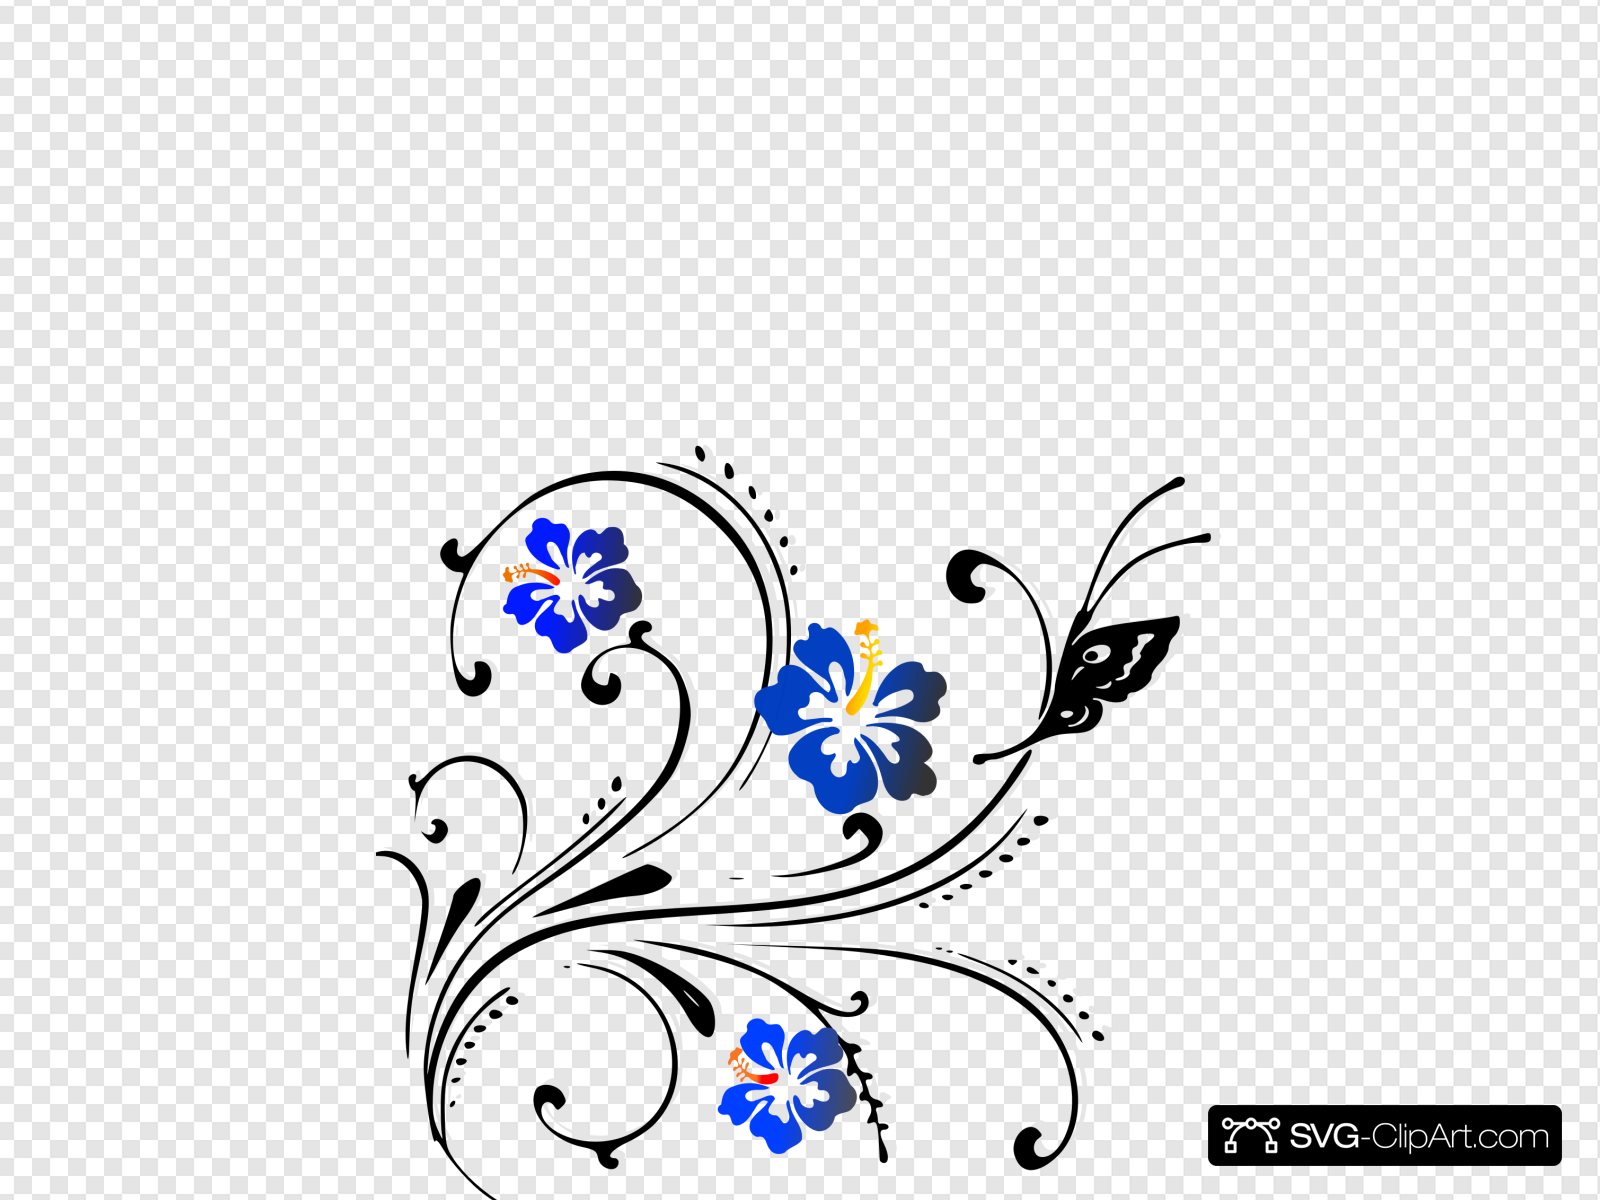 Butterfly Scroll Clip art, Icon and SVG.